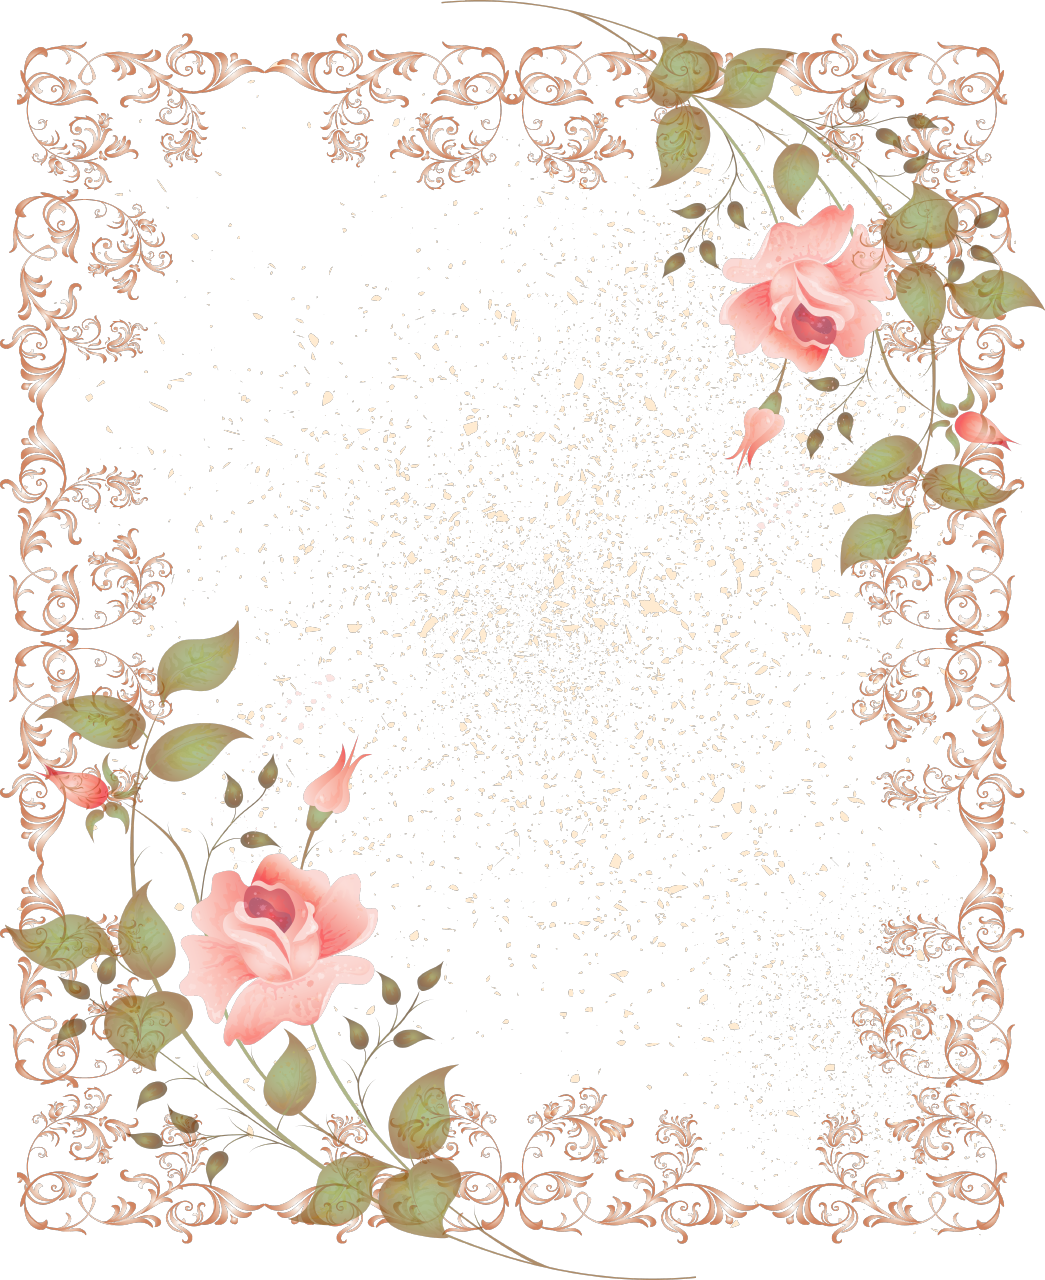 Funeral clipart picture frame. Pink rose free on